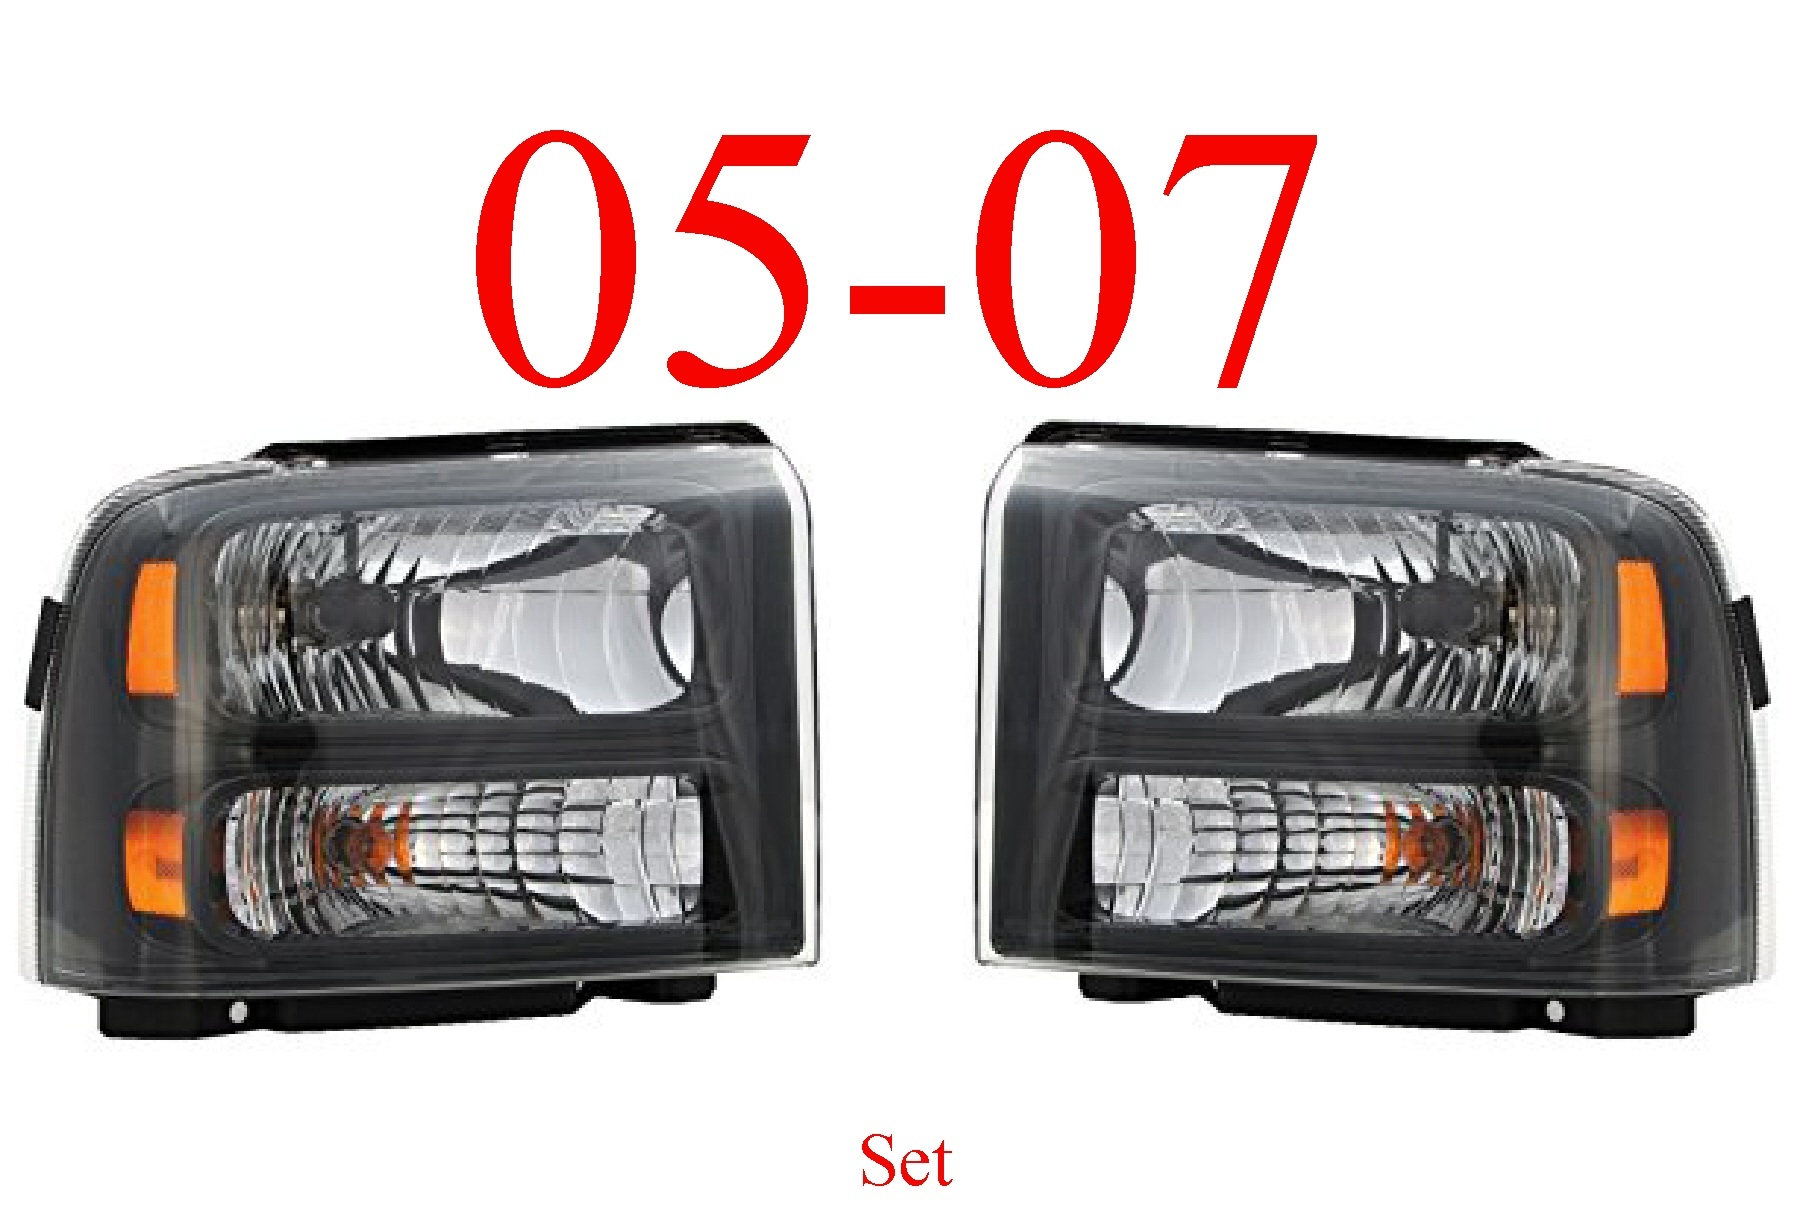 05 Ford Excursion Head Light Set Harley Davidson Black